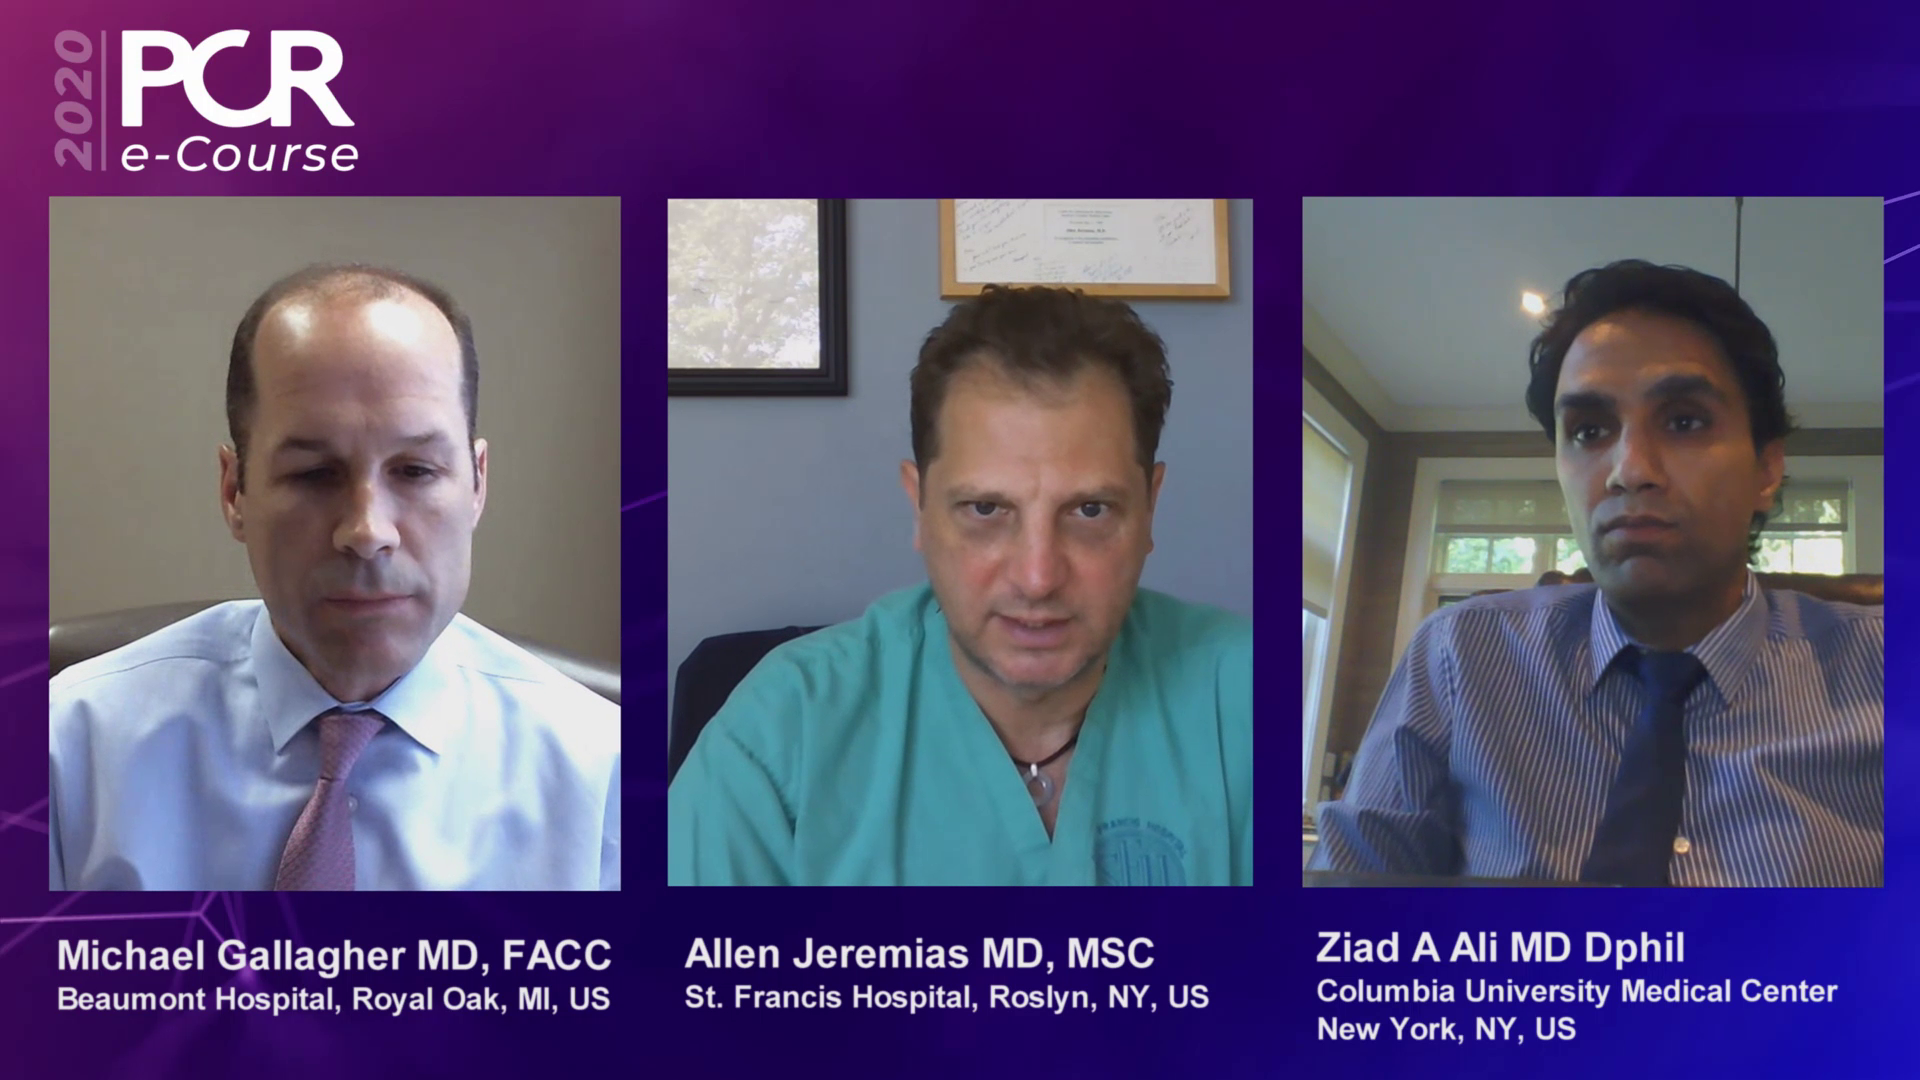 Allen Jeremias, MD, Ziad A. Ali, MD and Michael J. Gallagher, MD